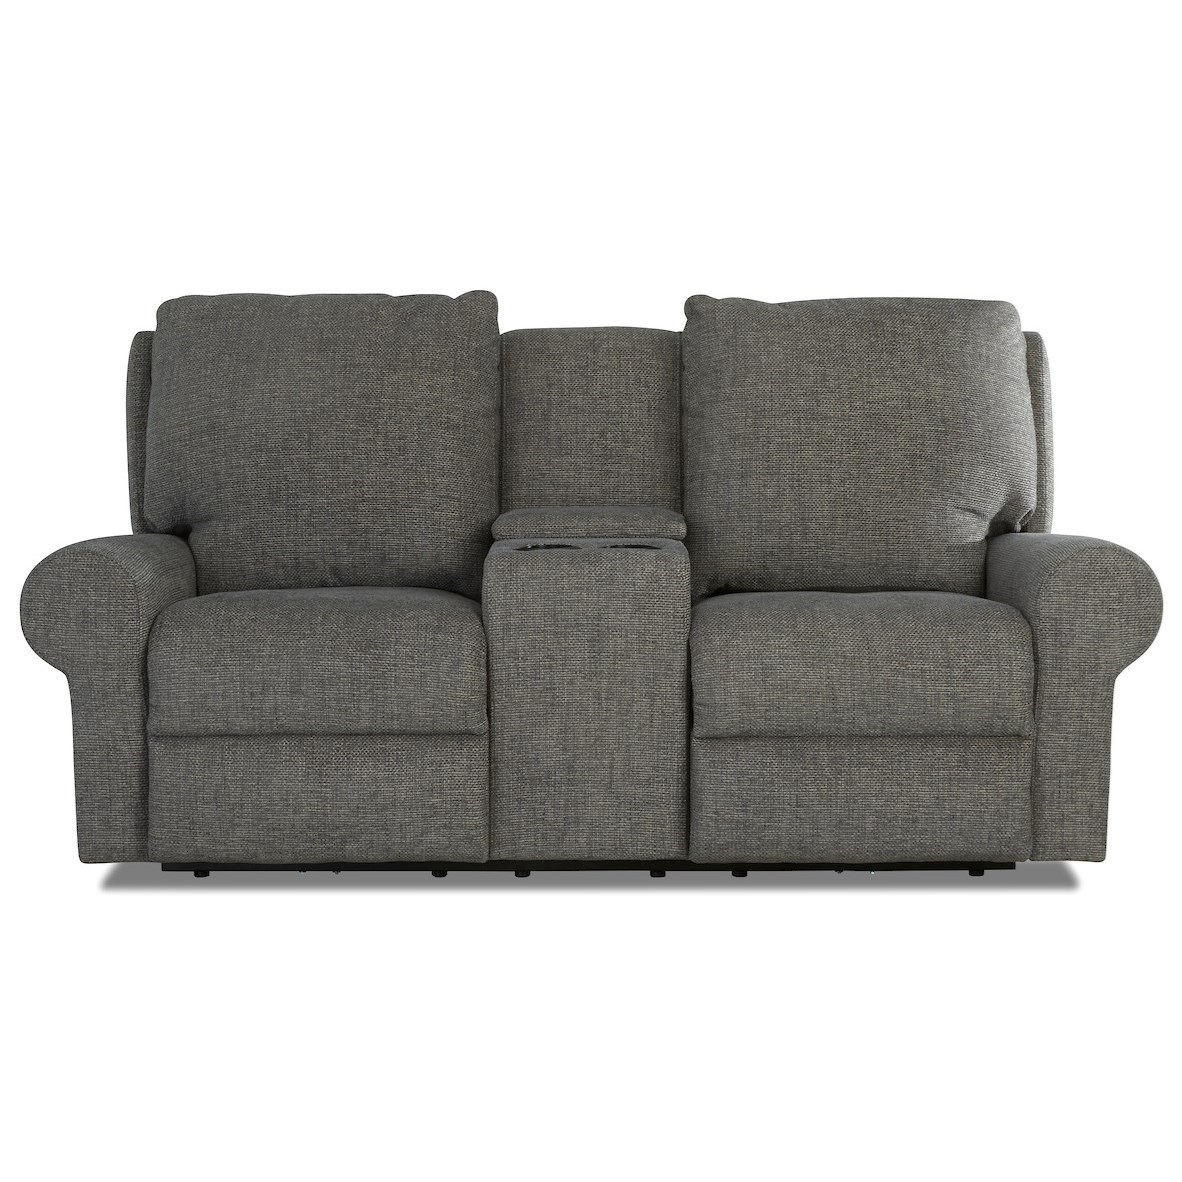 Casual Tailored Console Reclining Loveseat with Kool Gel Cushions